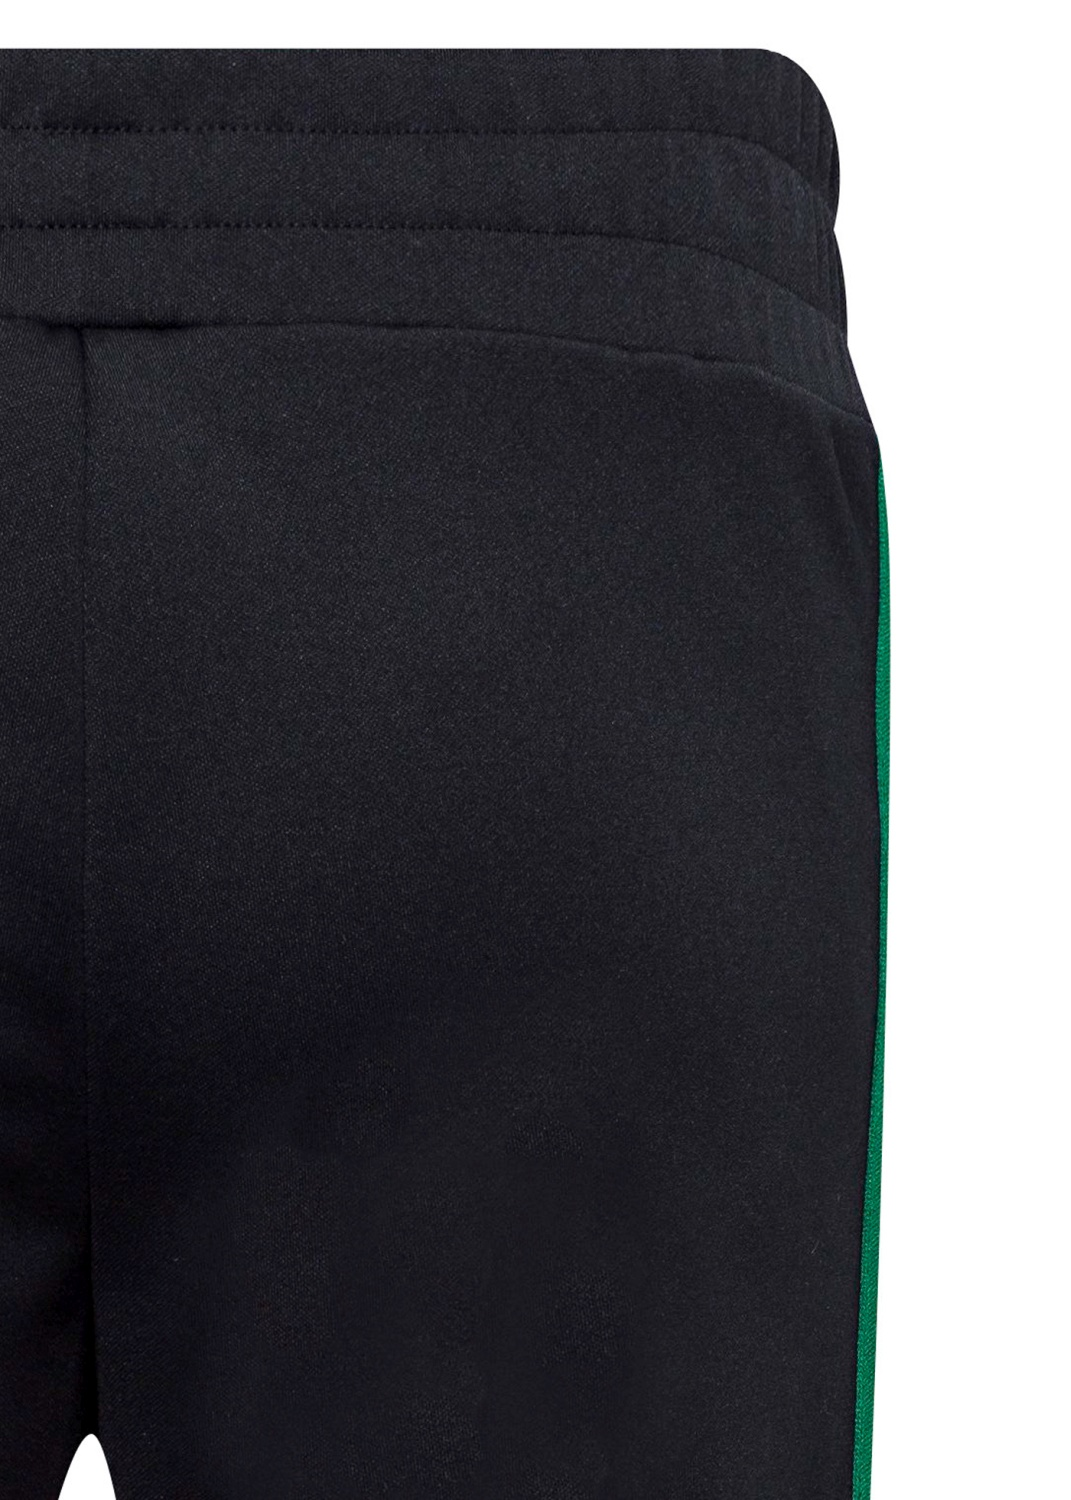 COLLEGE TRACK PANTS image number 3